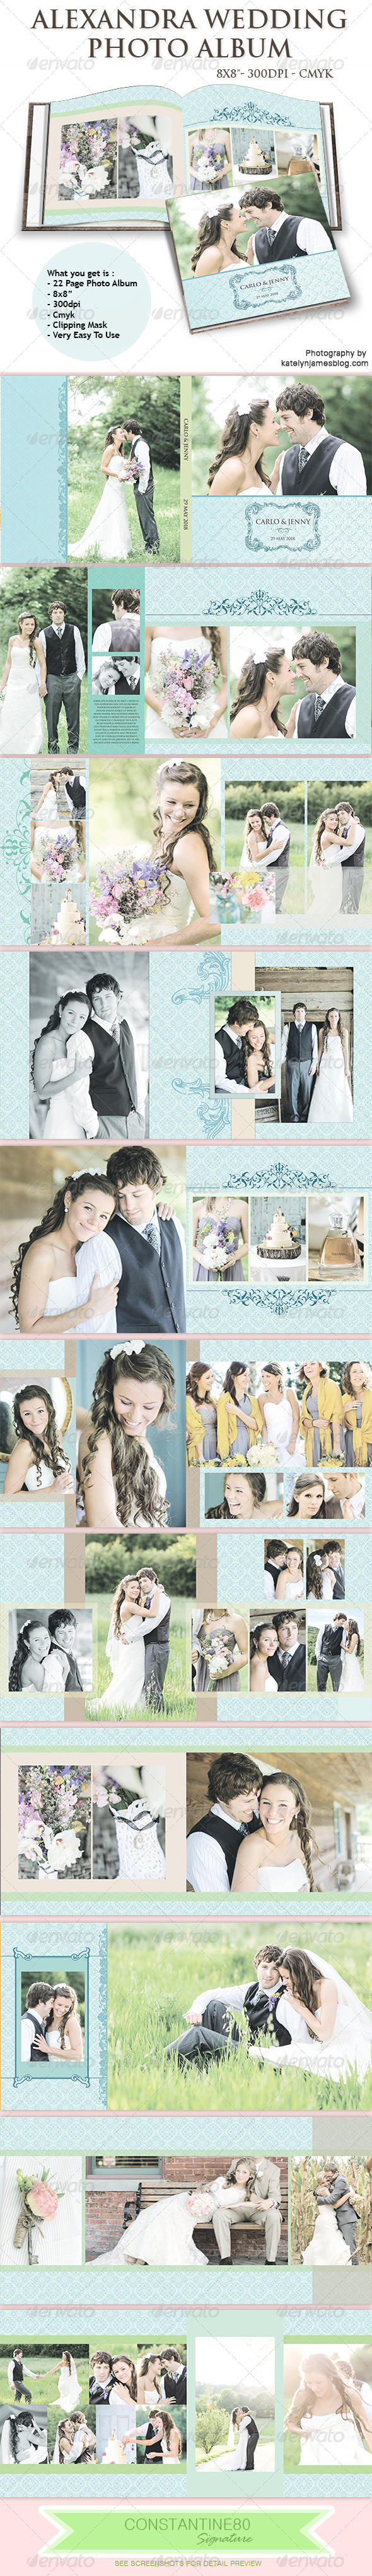 Alexandra Wedding Photo Album - Photo Albums Print Templates